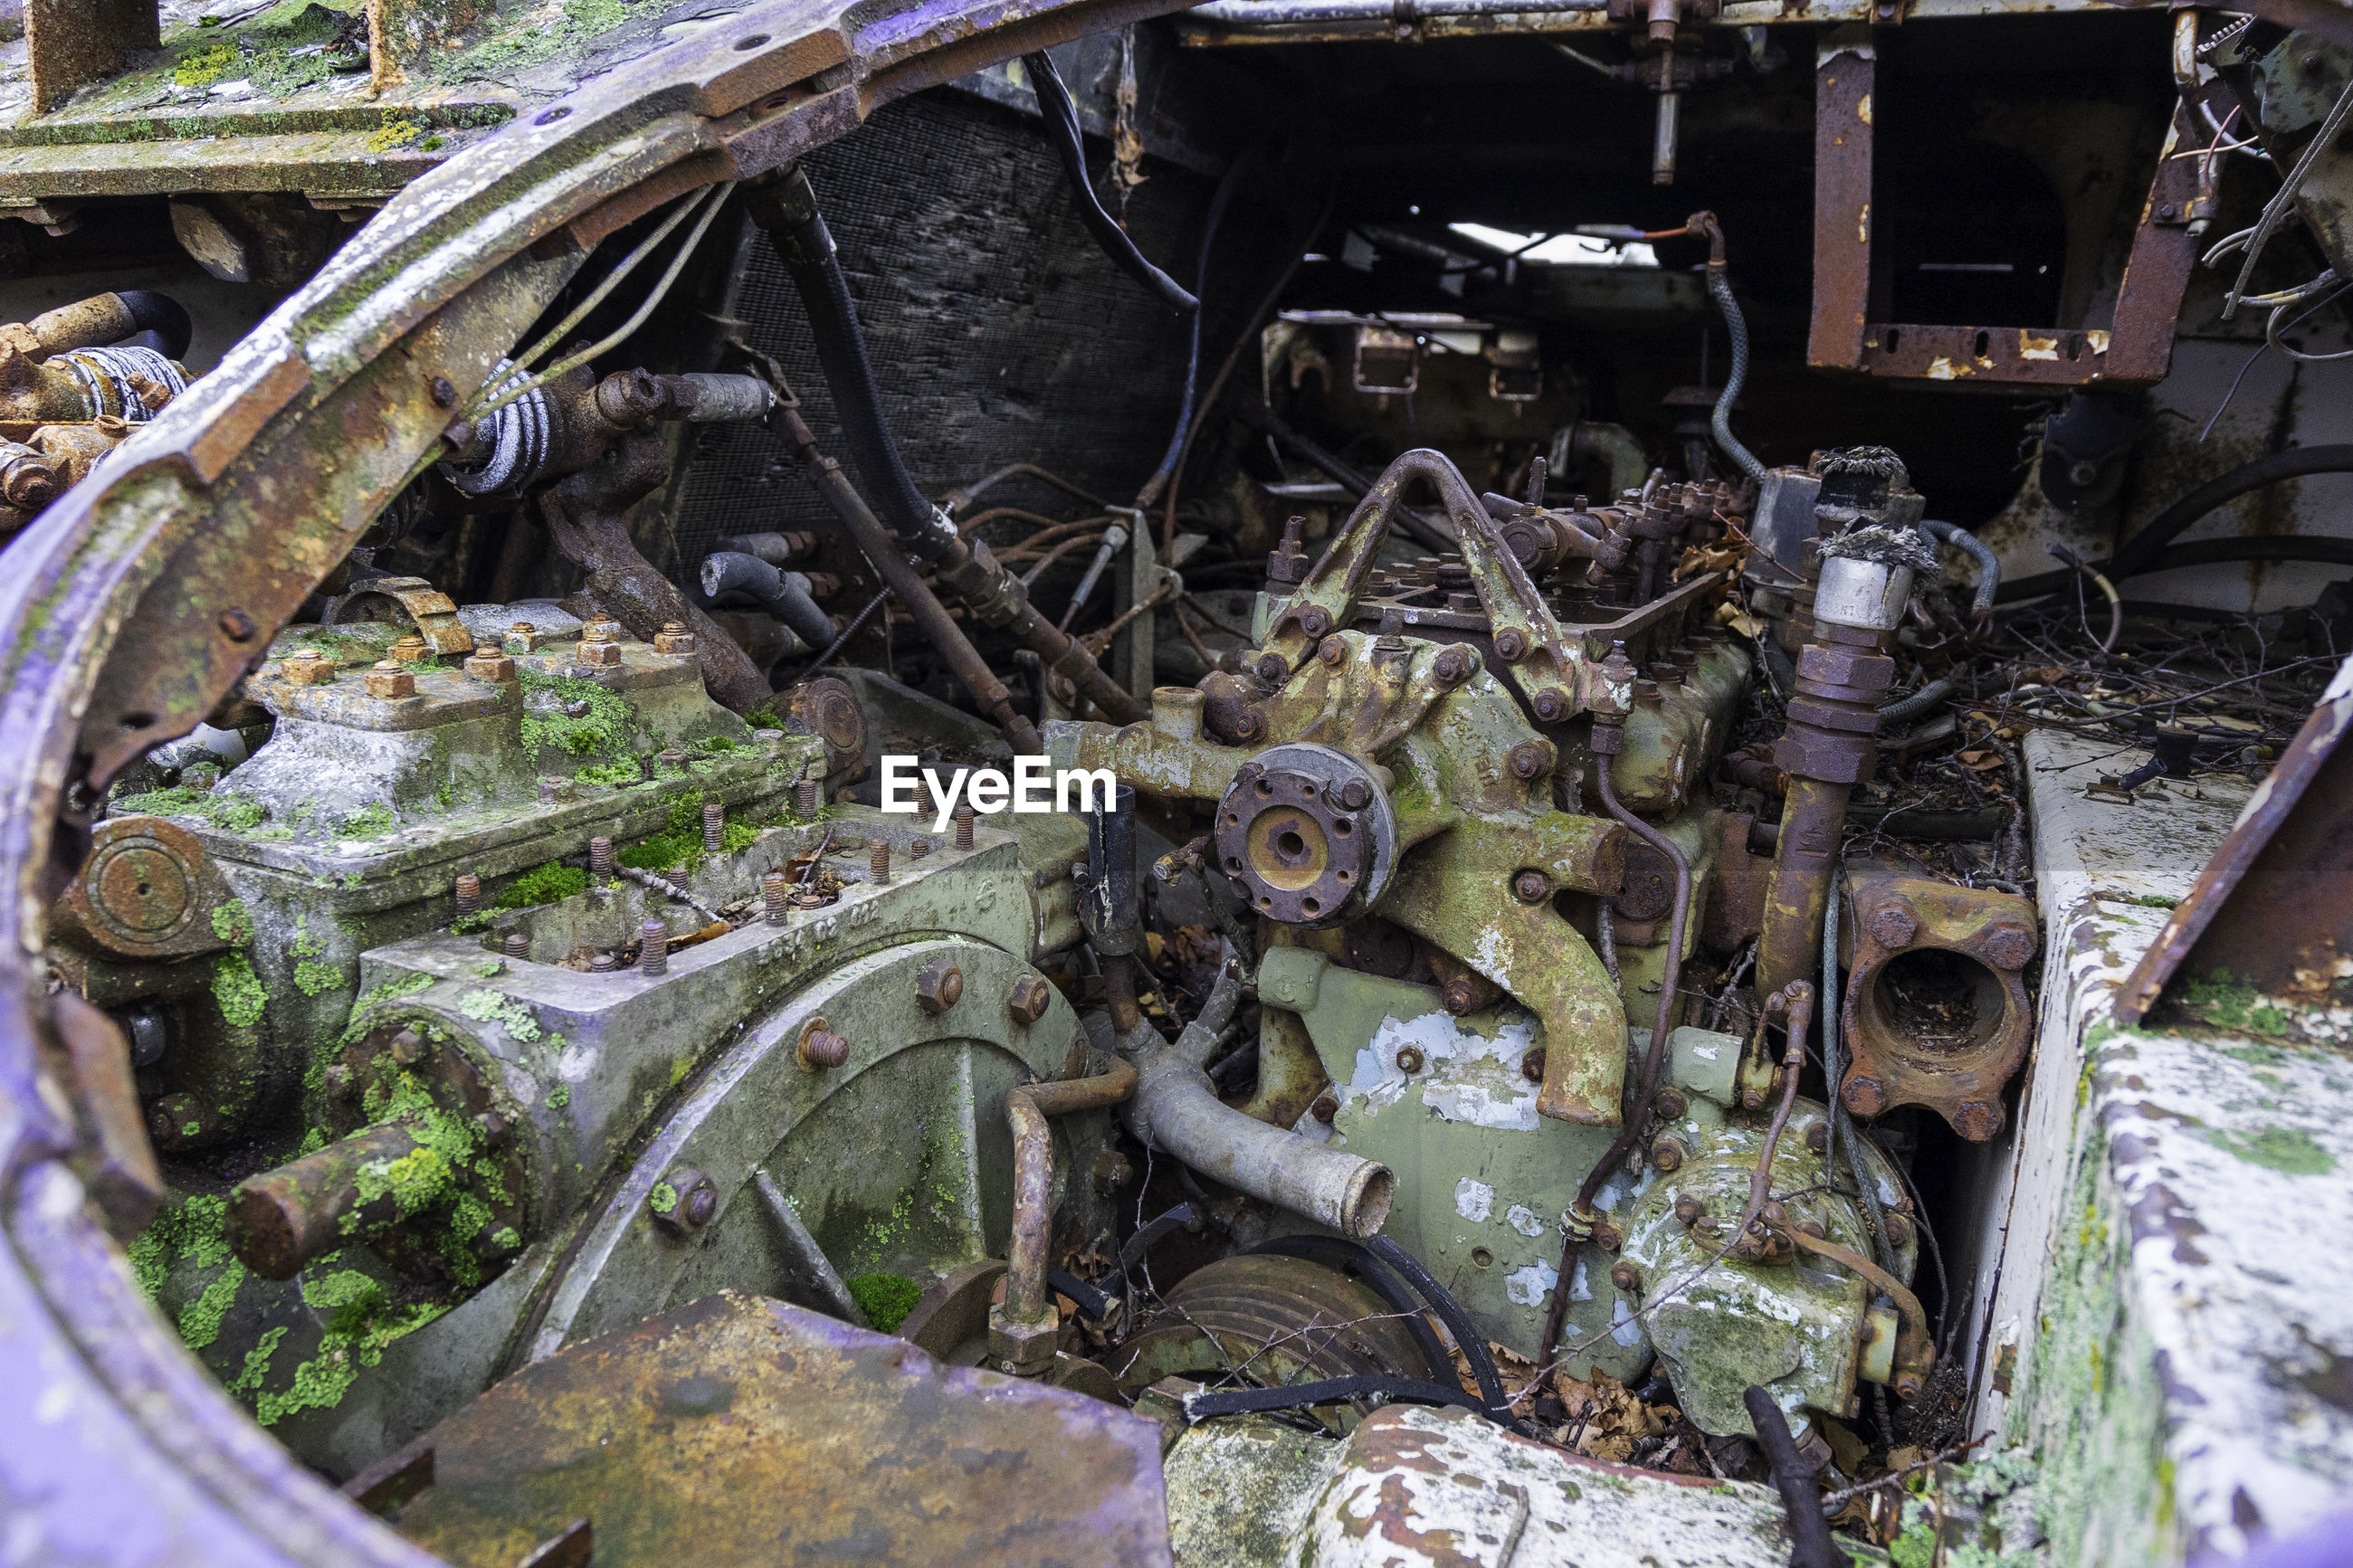 High angle view of old tank engine